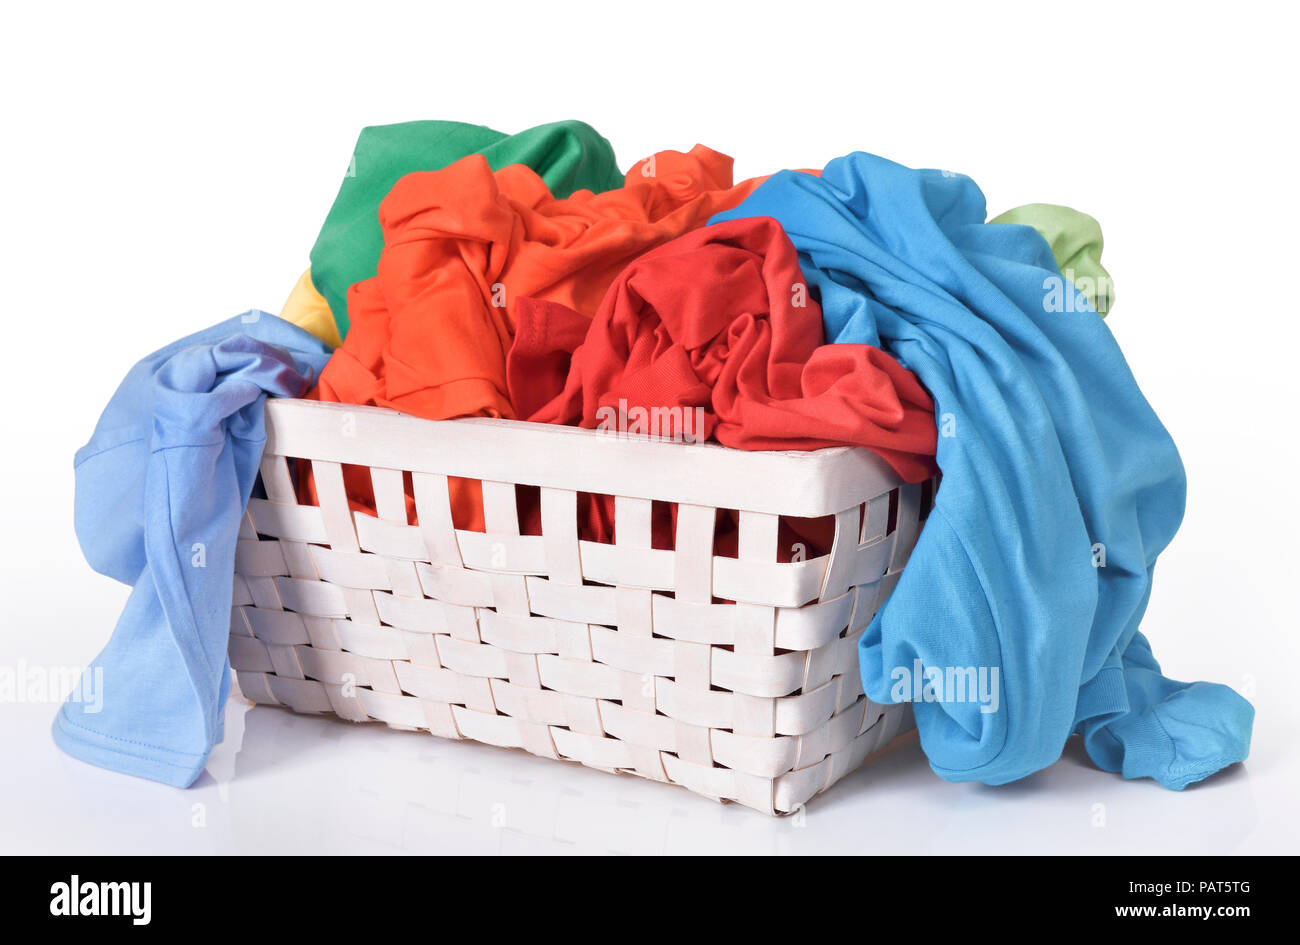 Dirty Laundry Baskets Colorful Dirty Clothes In Laundry Basket Isolated Over White